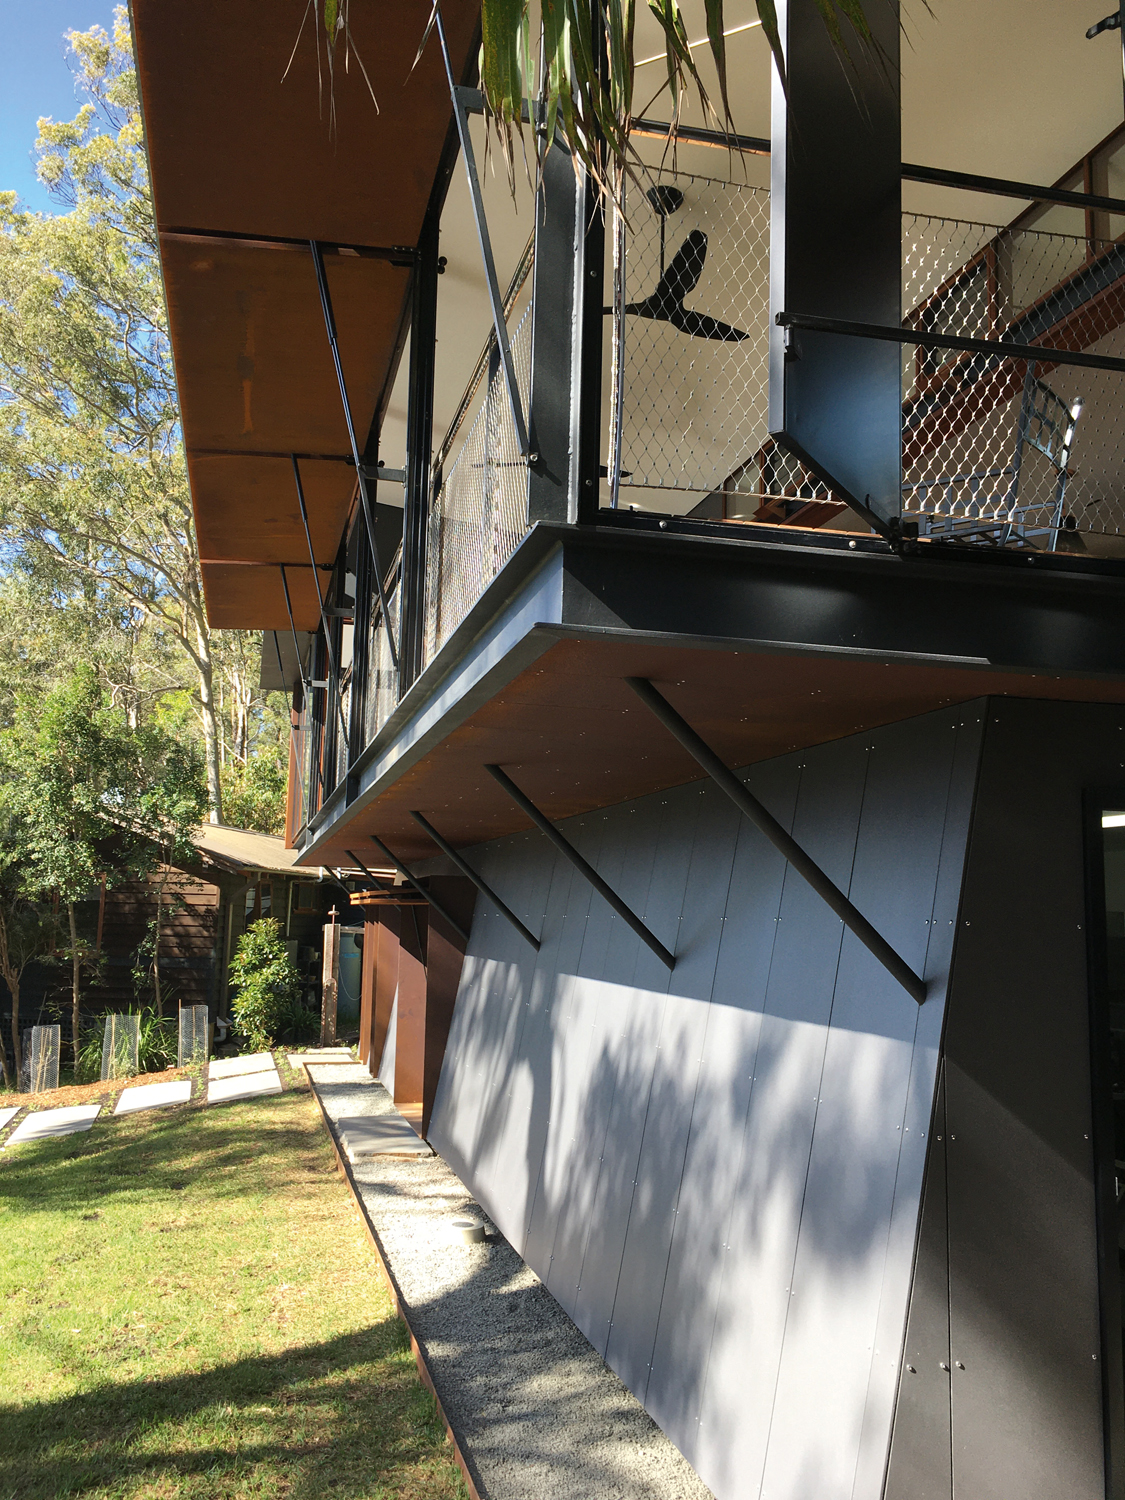 Protecting your home during the bushfire season